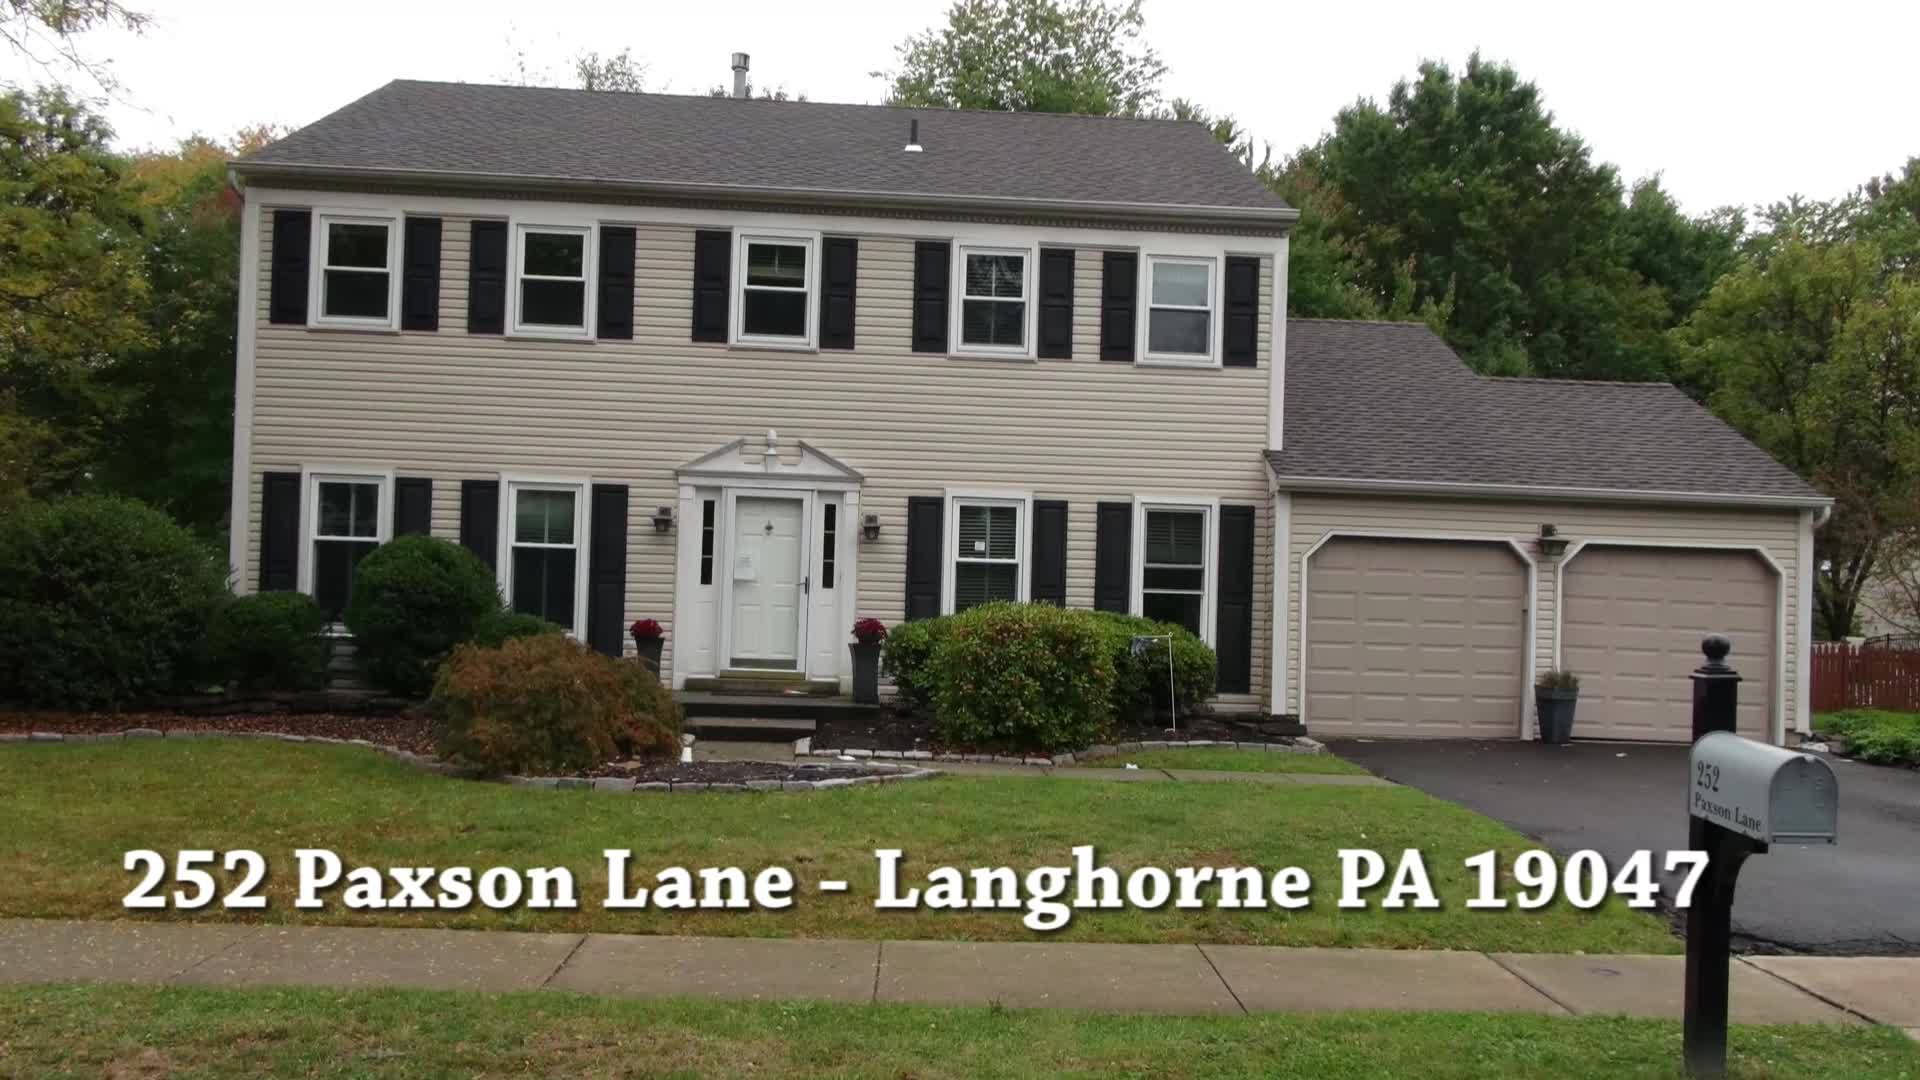 Foreclosure Homes in Langhorne PA 19047 | 252 Paxson Lane